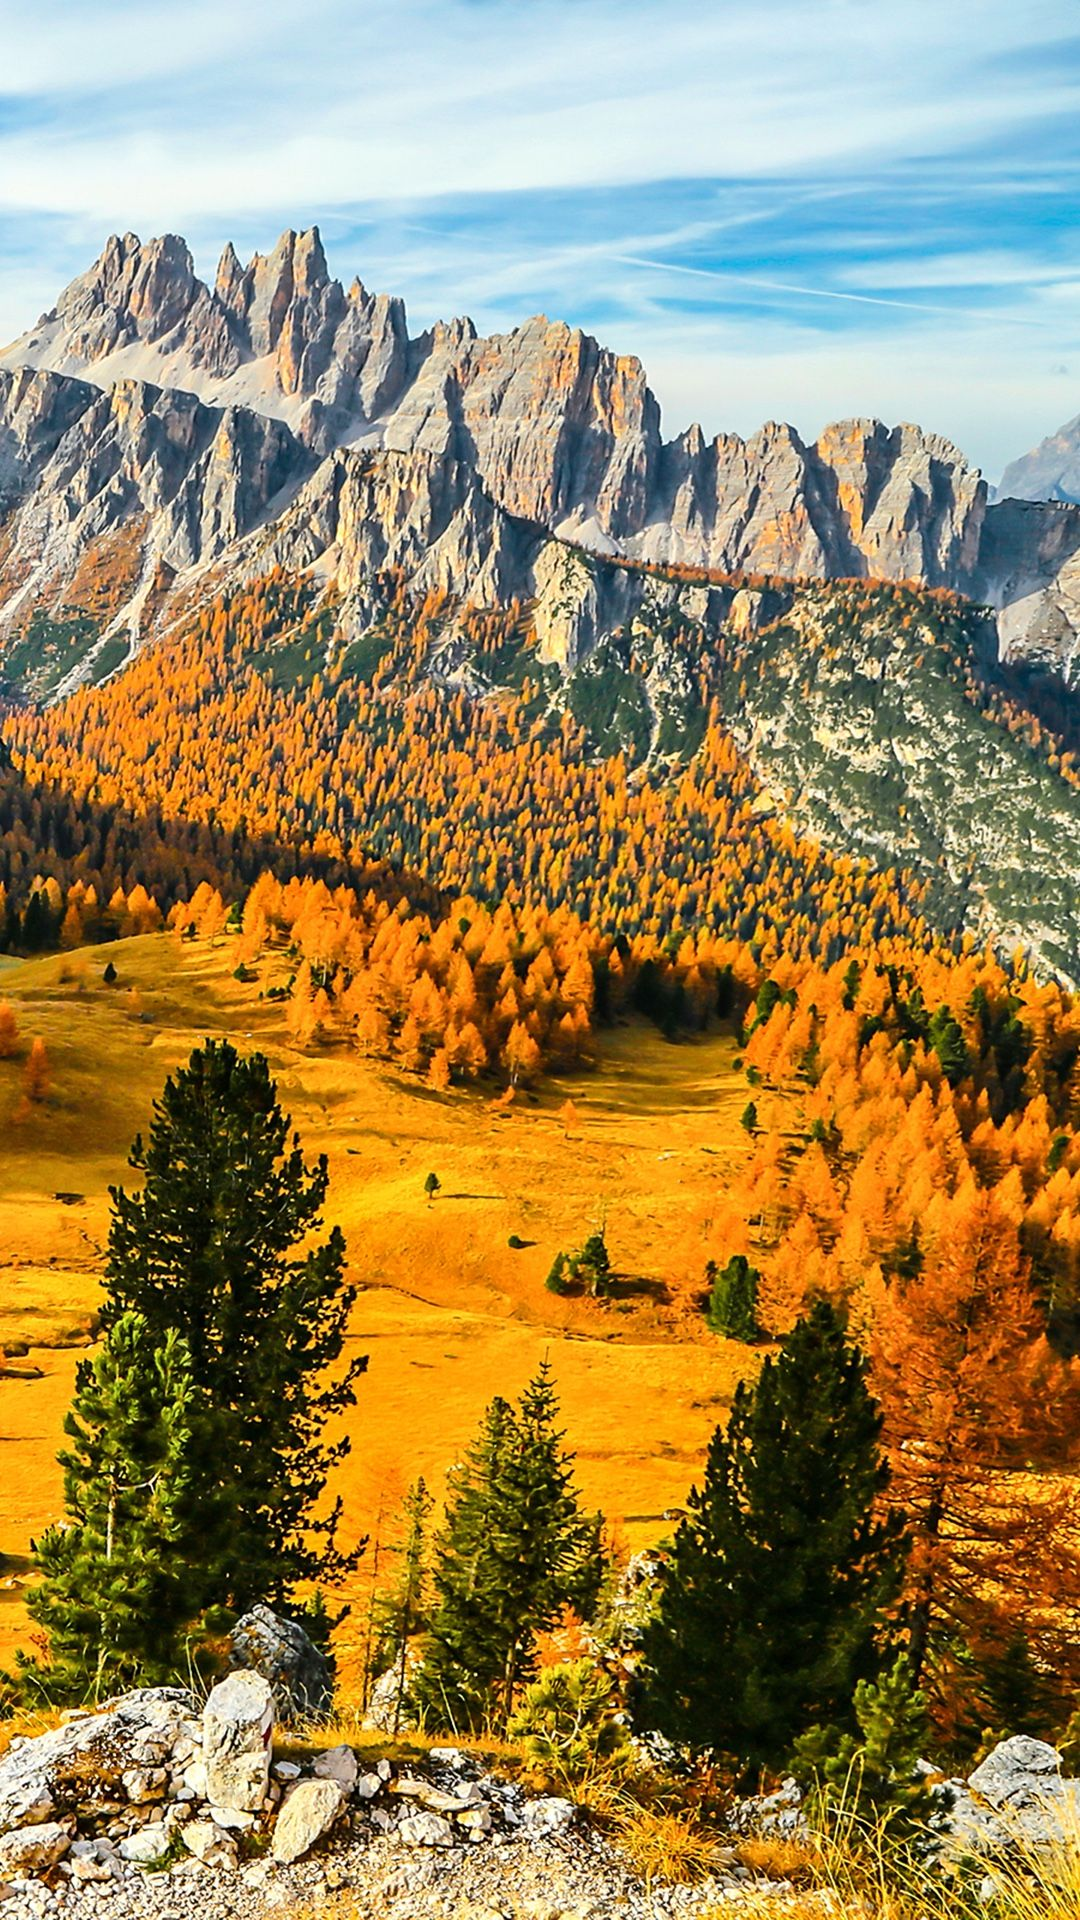 Gold Autumn Wallpaper For Your Iphone X From Everpix In 2019